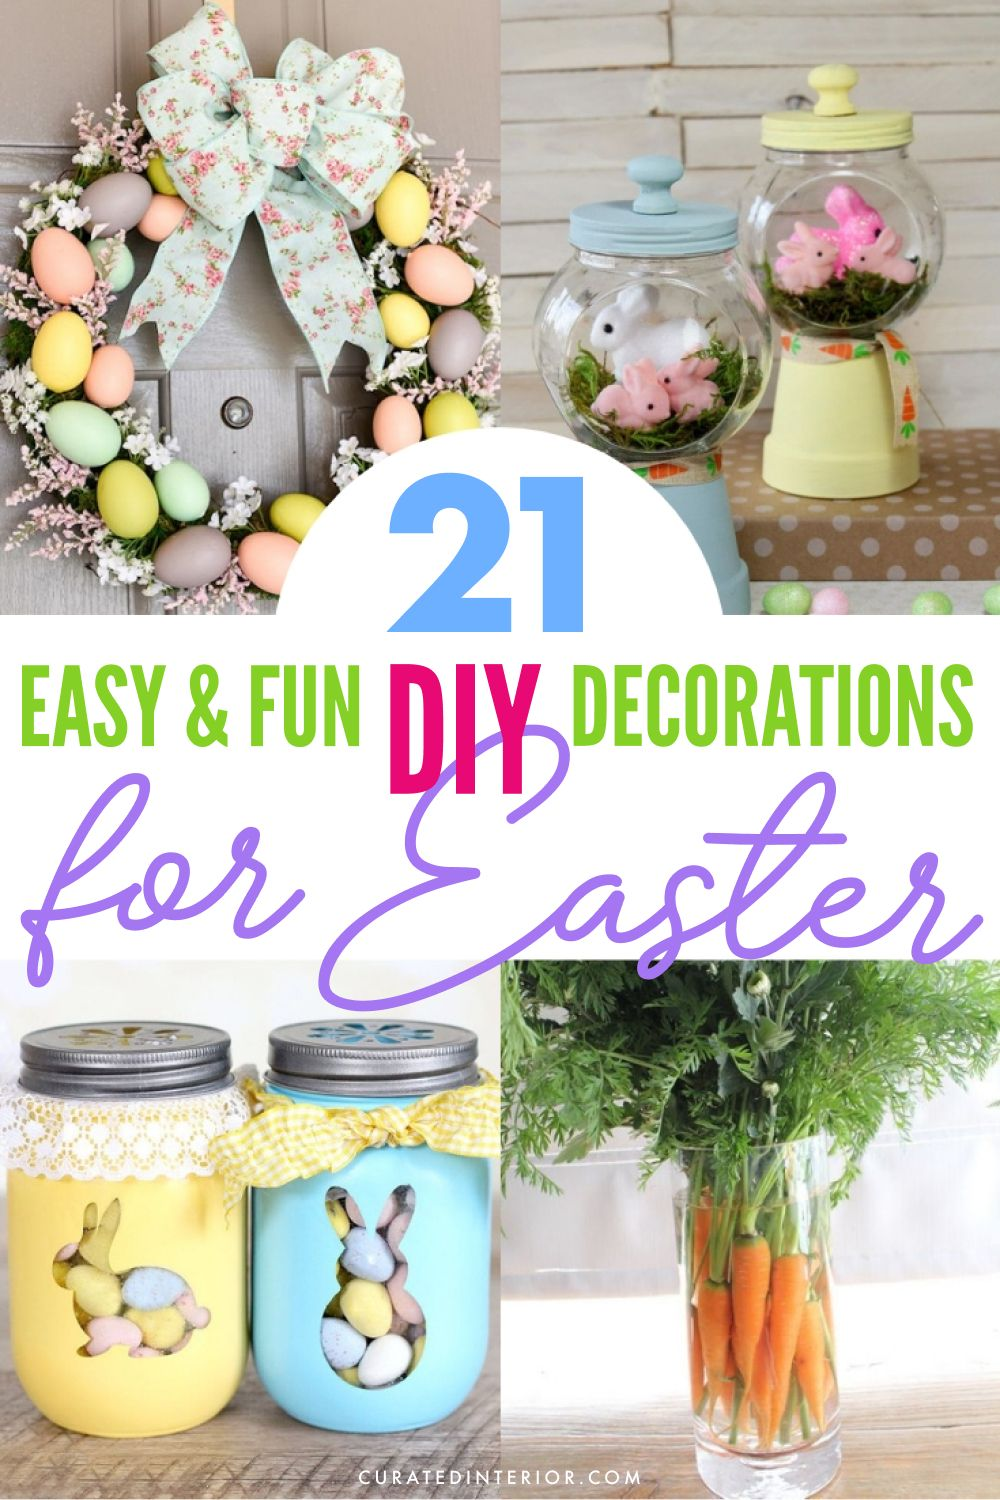 21 Easy & Fun DIY Decorations for Easter